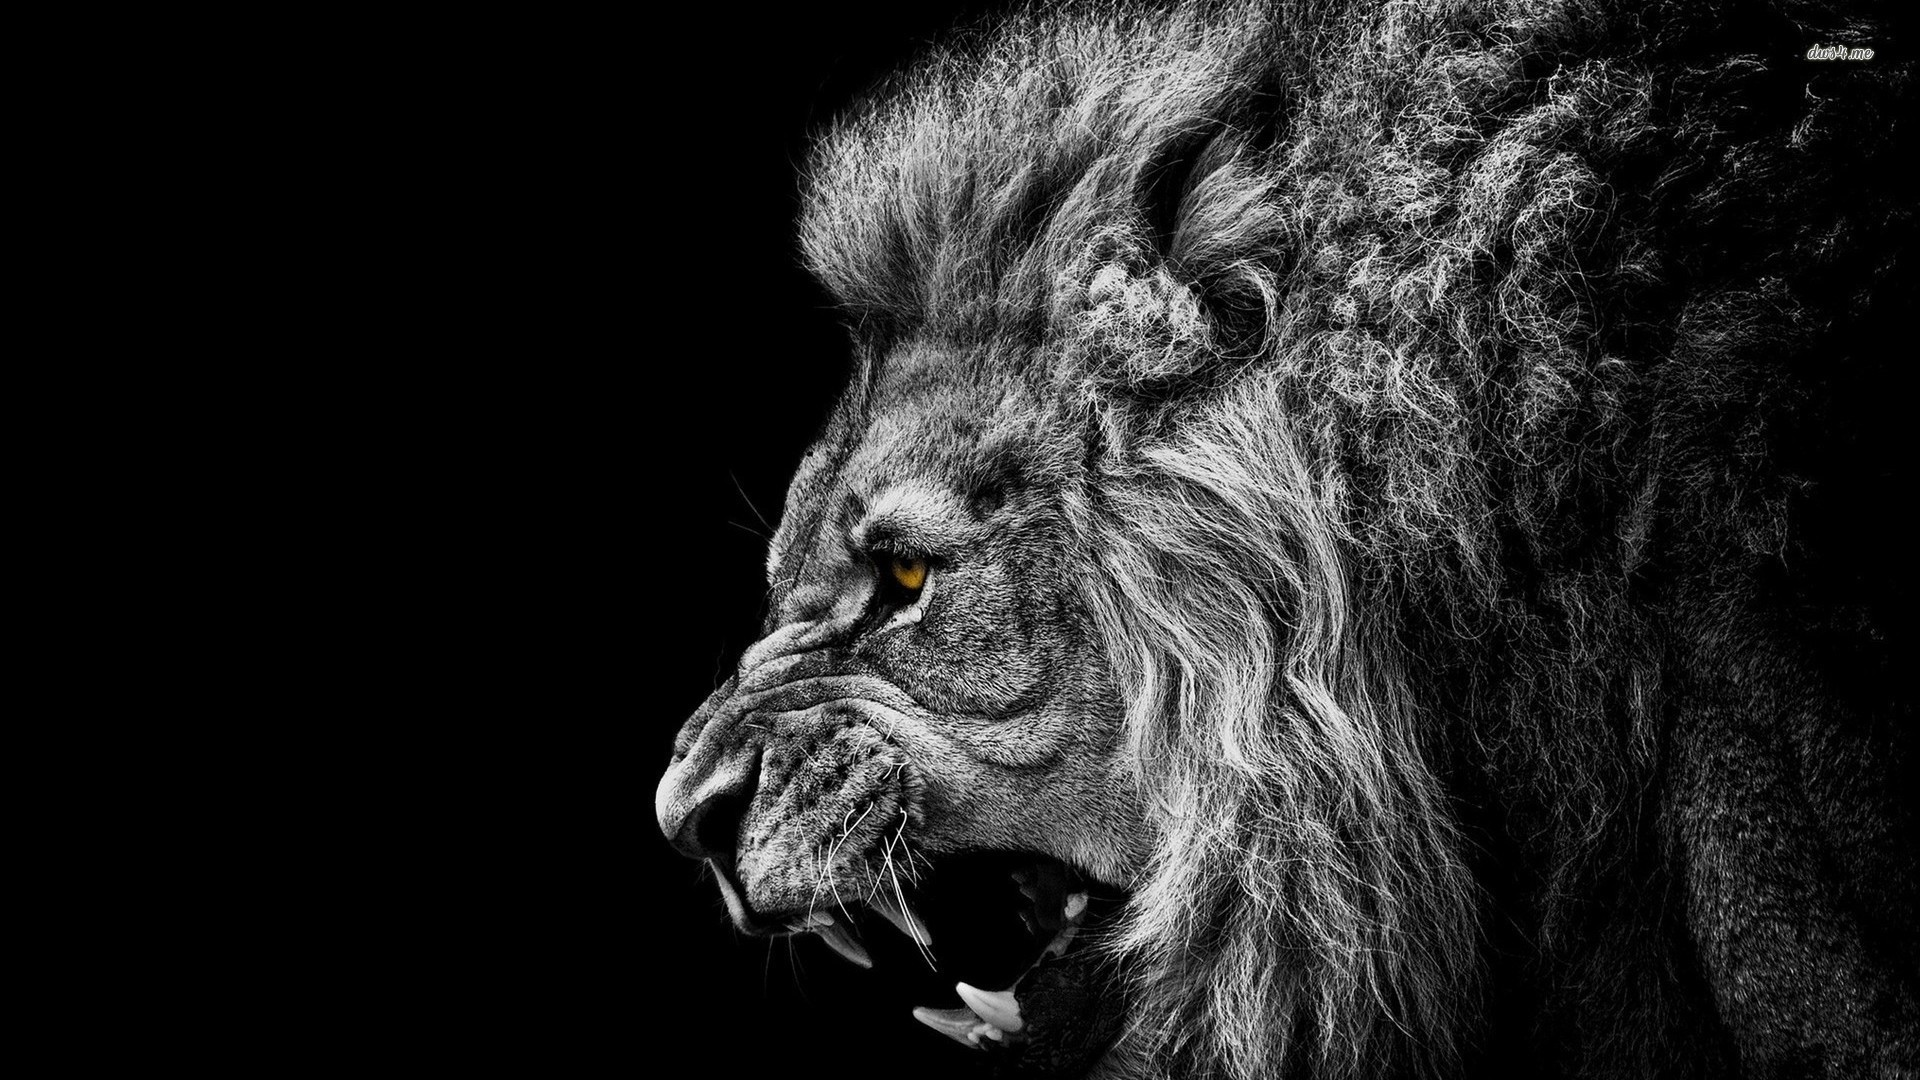 Roaring Lion Wallpaper - Roaring Lion Wallpaper Hd , HD Wallpaper & Backgrounds